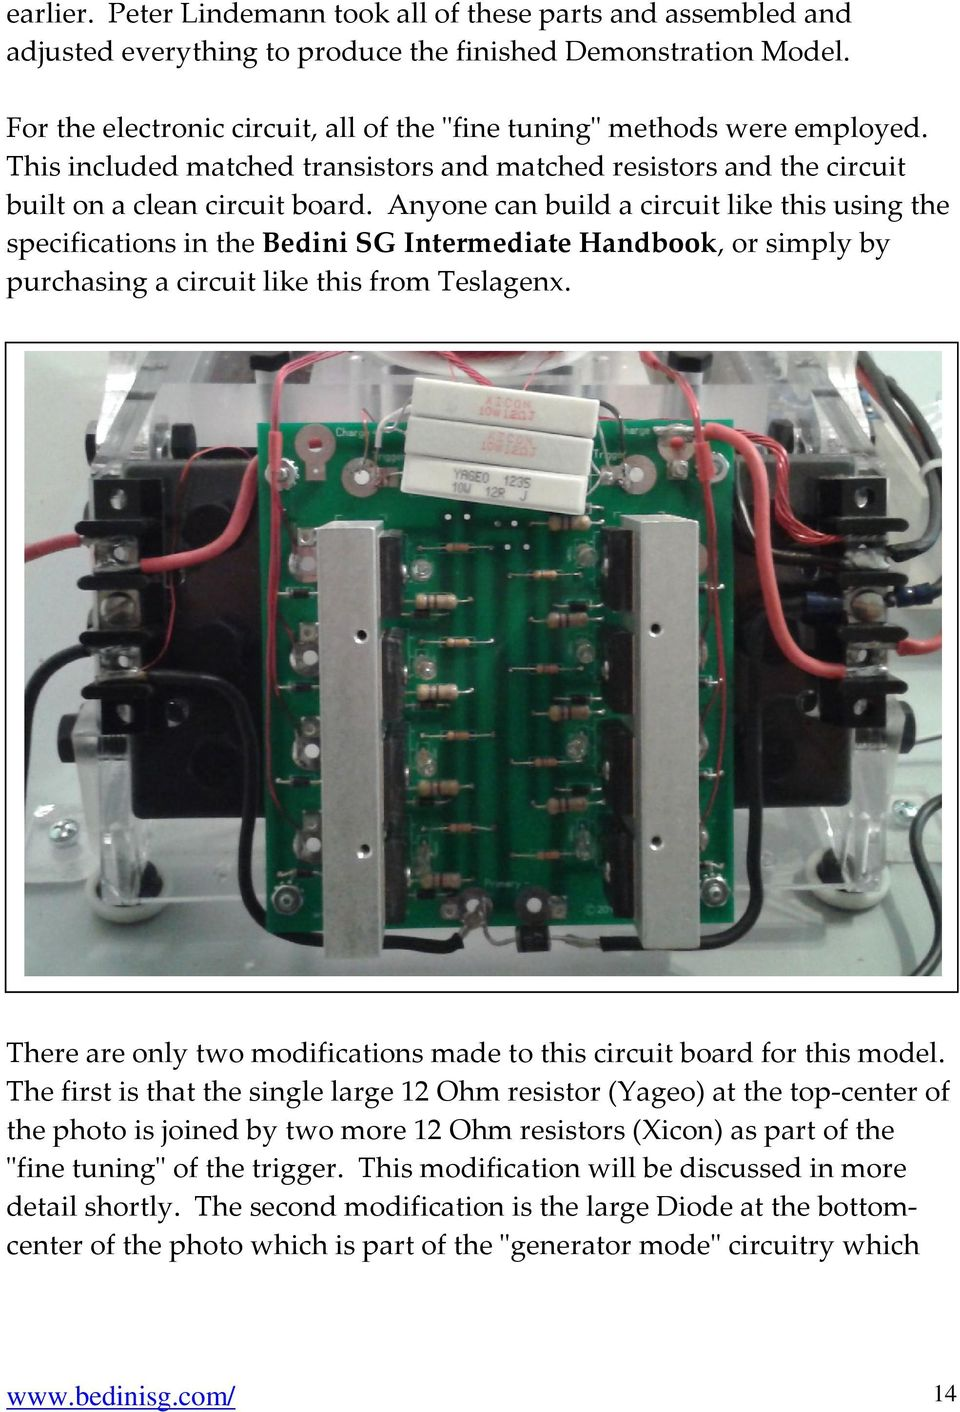 Bedini Sg The Complete Advanced Handbook Written By Peter Alternating Current Generator Diagram Besides Motor Anyone Can Build A Circuit Like This Using Specifications In Intermediate